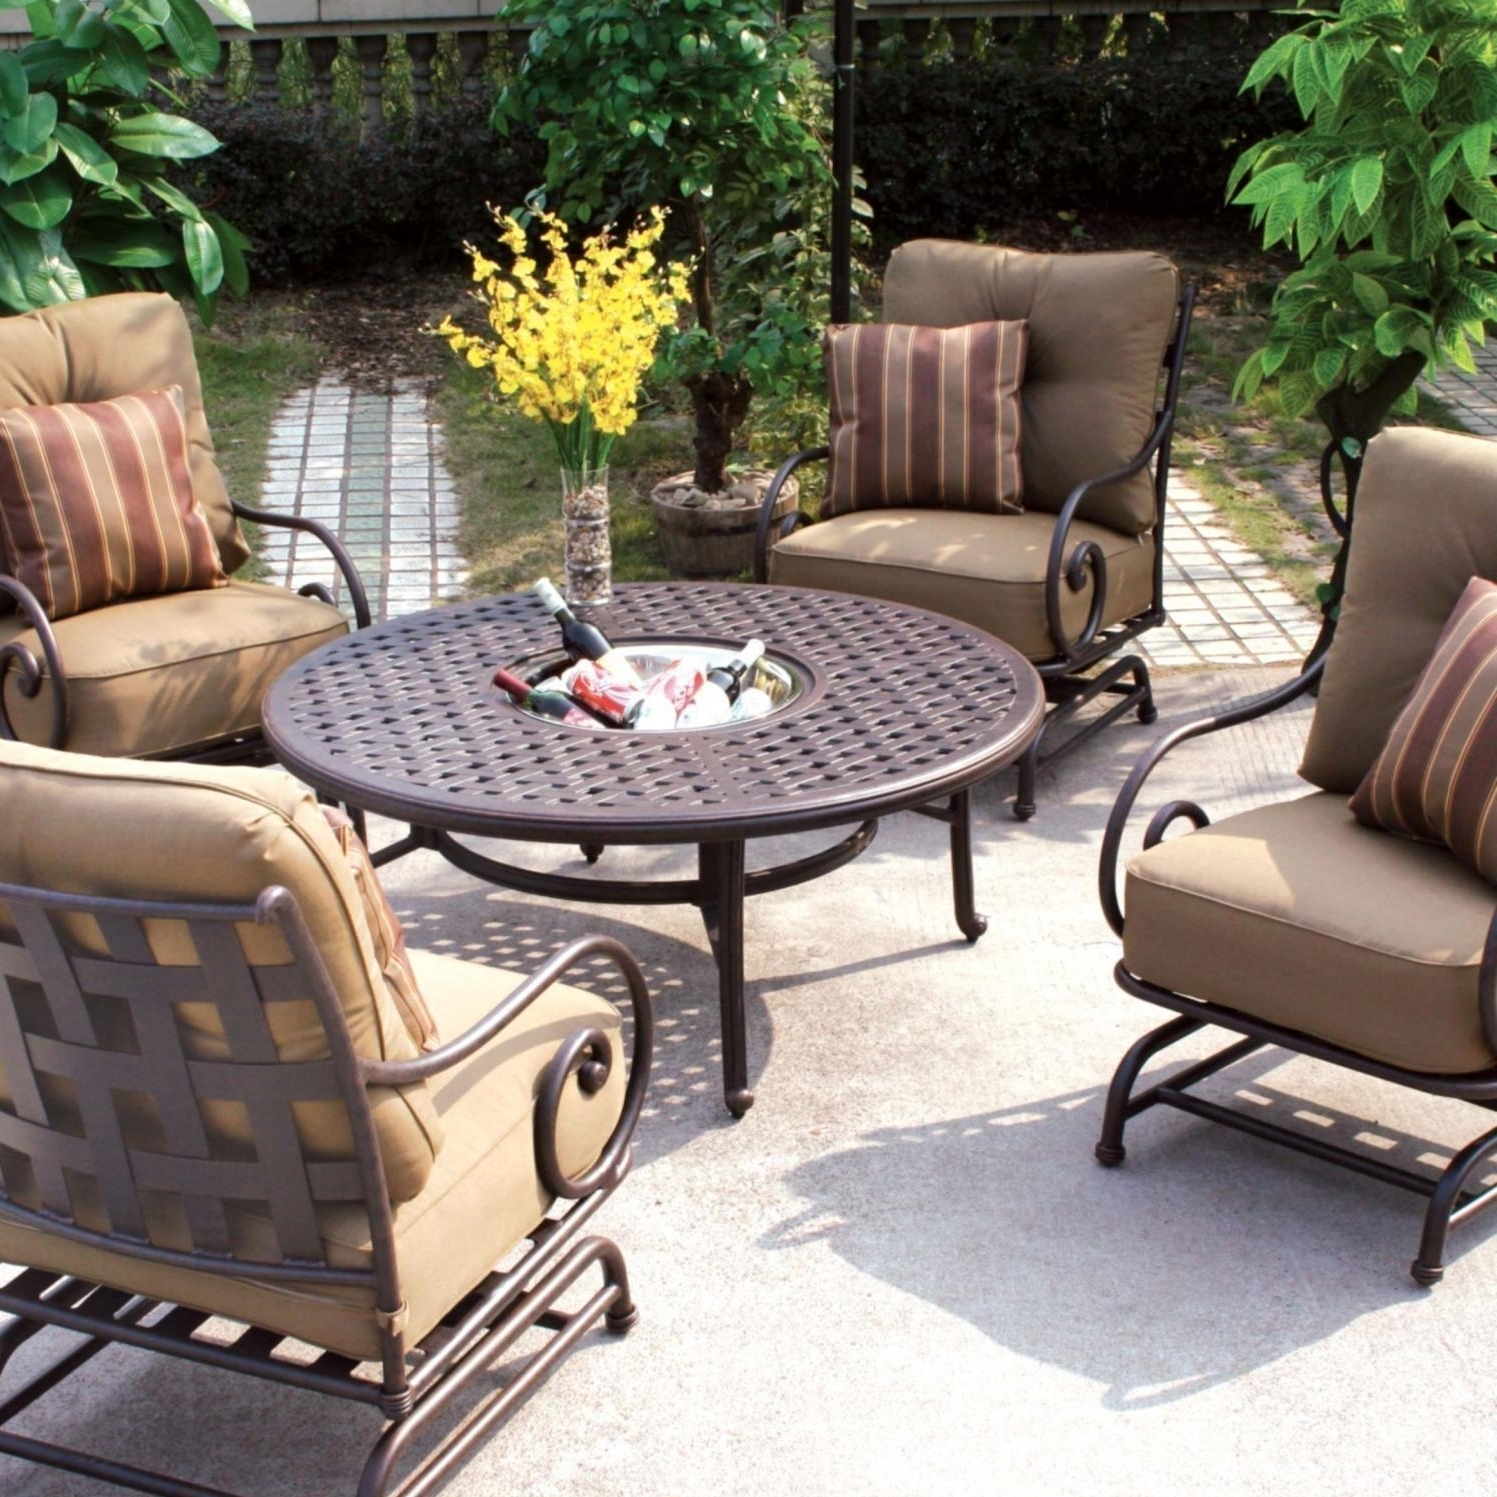 Patio : Formidable Searsr Patio Furniture Pictures Concept Clearance Within Favorite Sears Patio Furniture Conversation Sets (View 6 of 15)